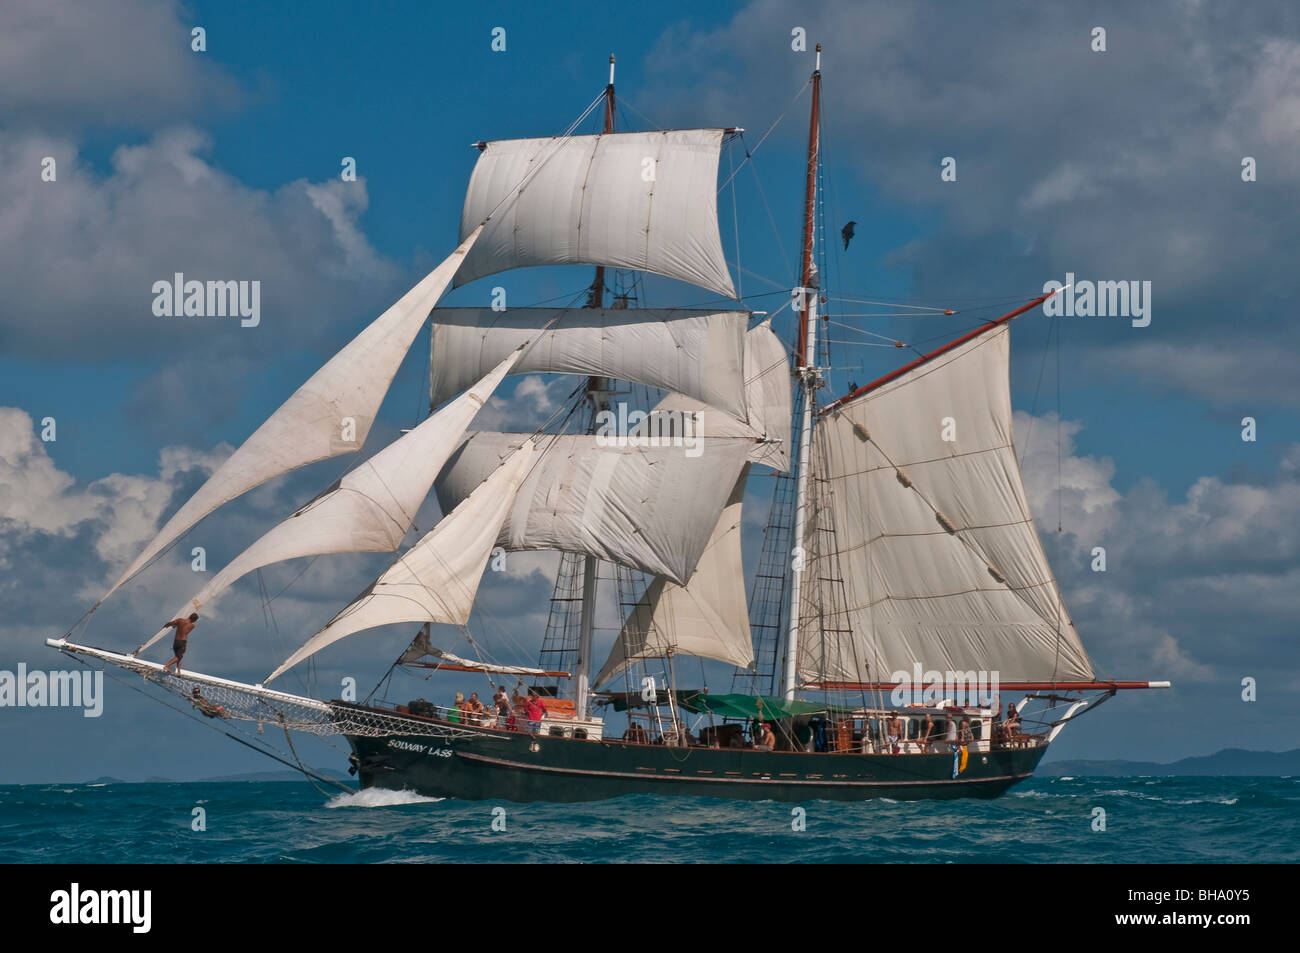 The Solway Lass 125 foot schooner built in 1906 sailing in the Whitsunday Islands on the Great Barrier Reef - Stock Image